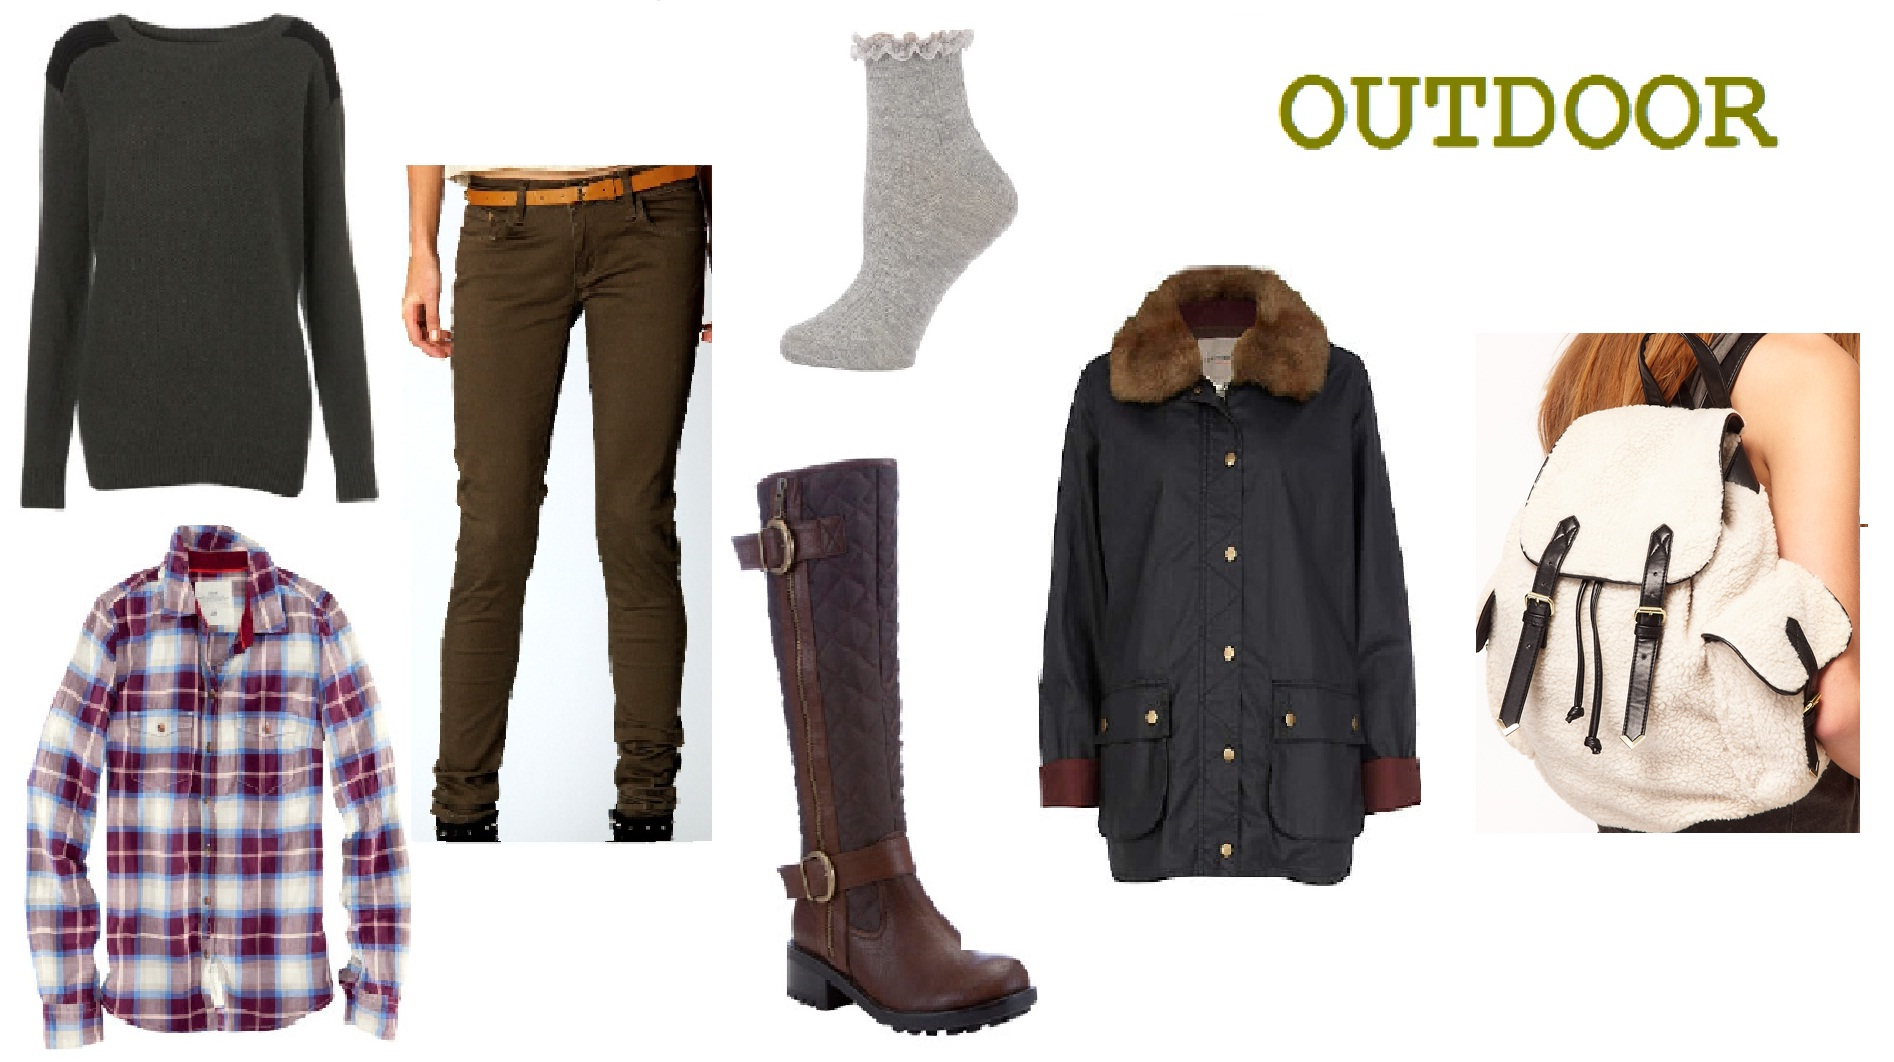 Warm outdoor Look | Women's Outfit | ASOS Fashion Finder